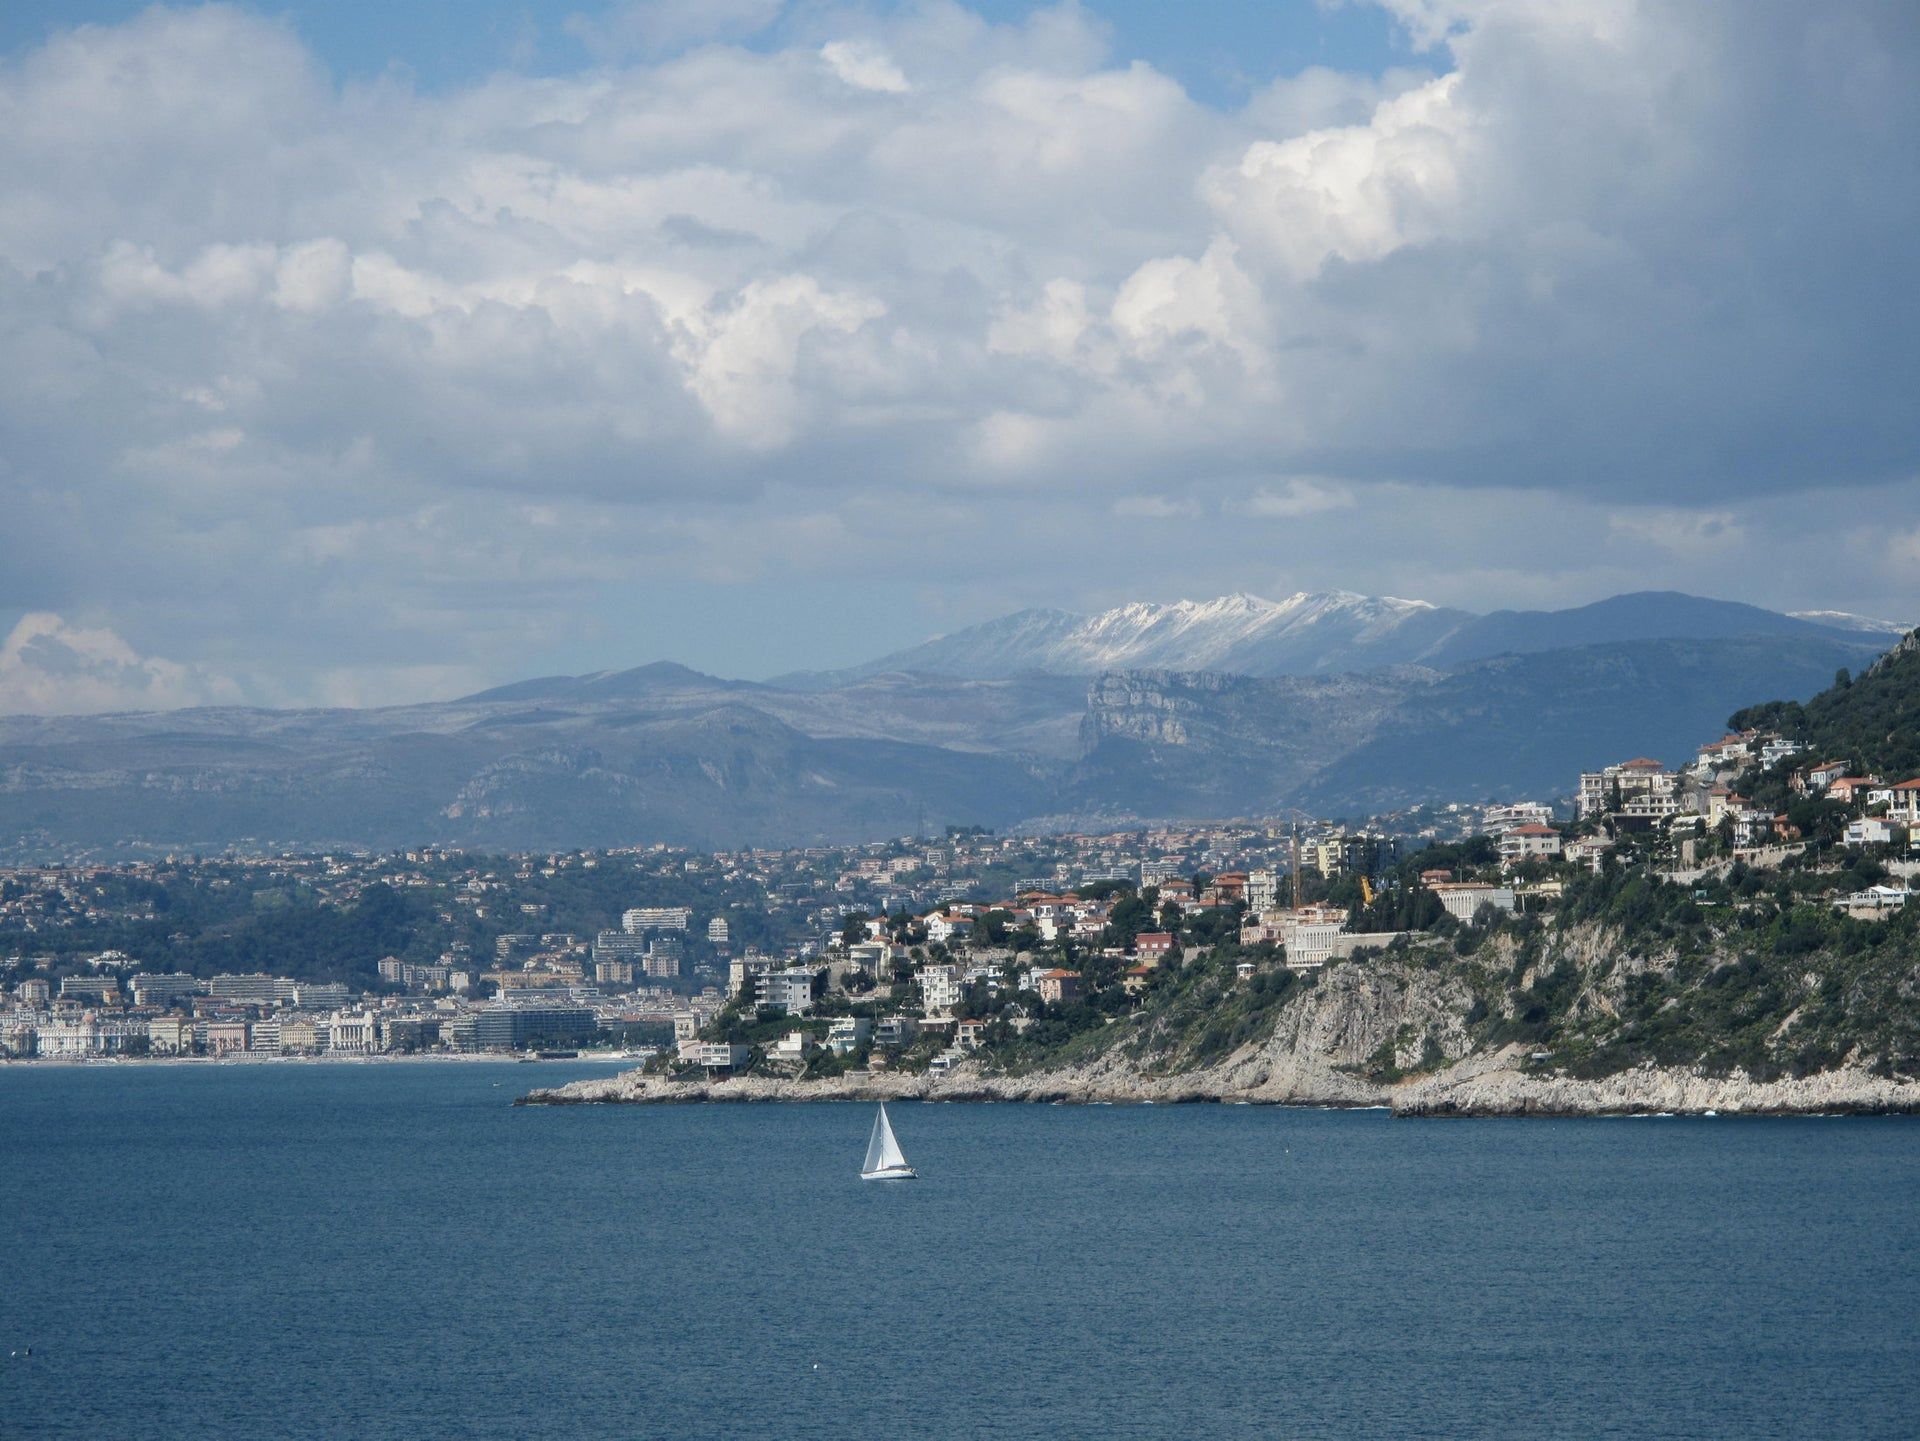 The town of Nice and the hill of Mont-Boron